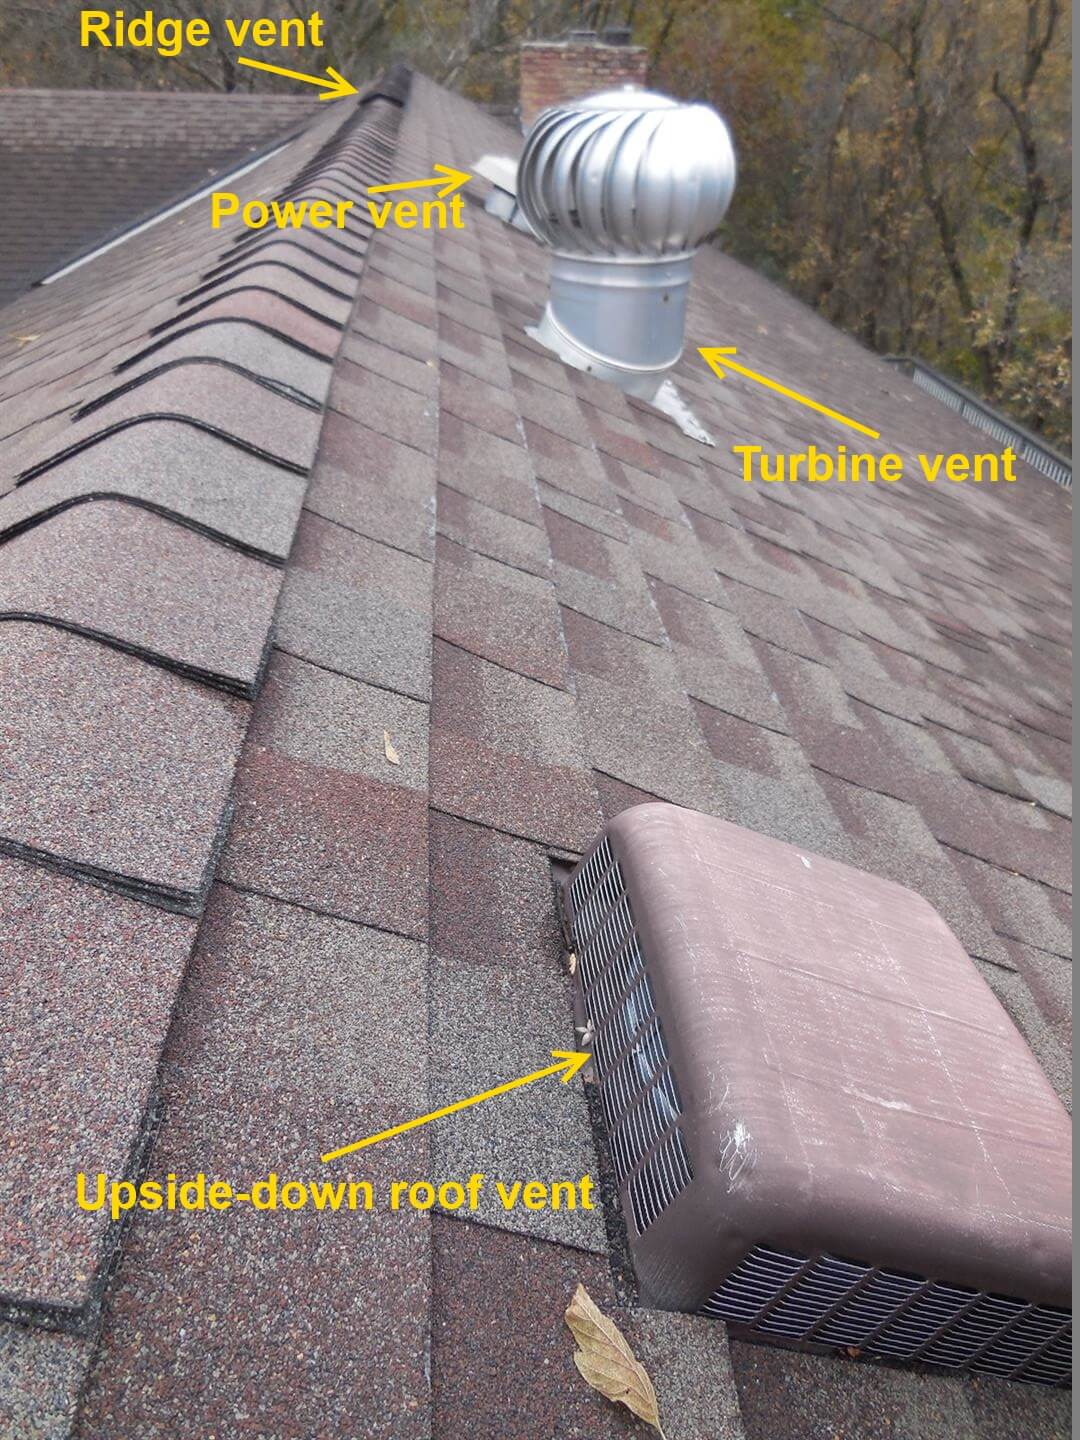 Roof Vents Problems And Solutions - Installing roof vent for bathroom exhaust fan